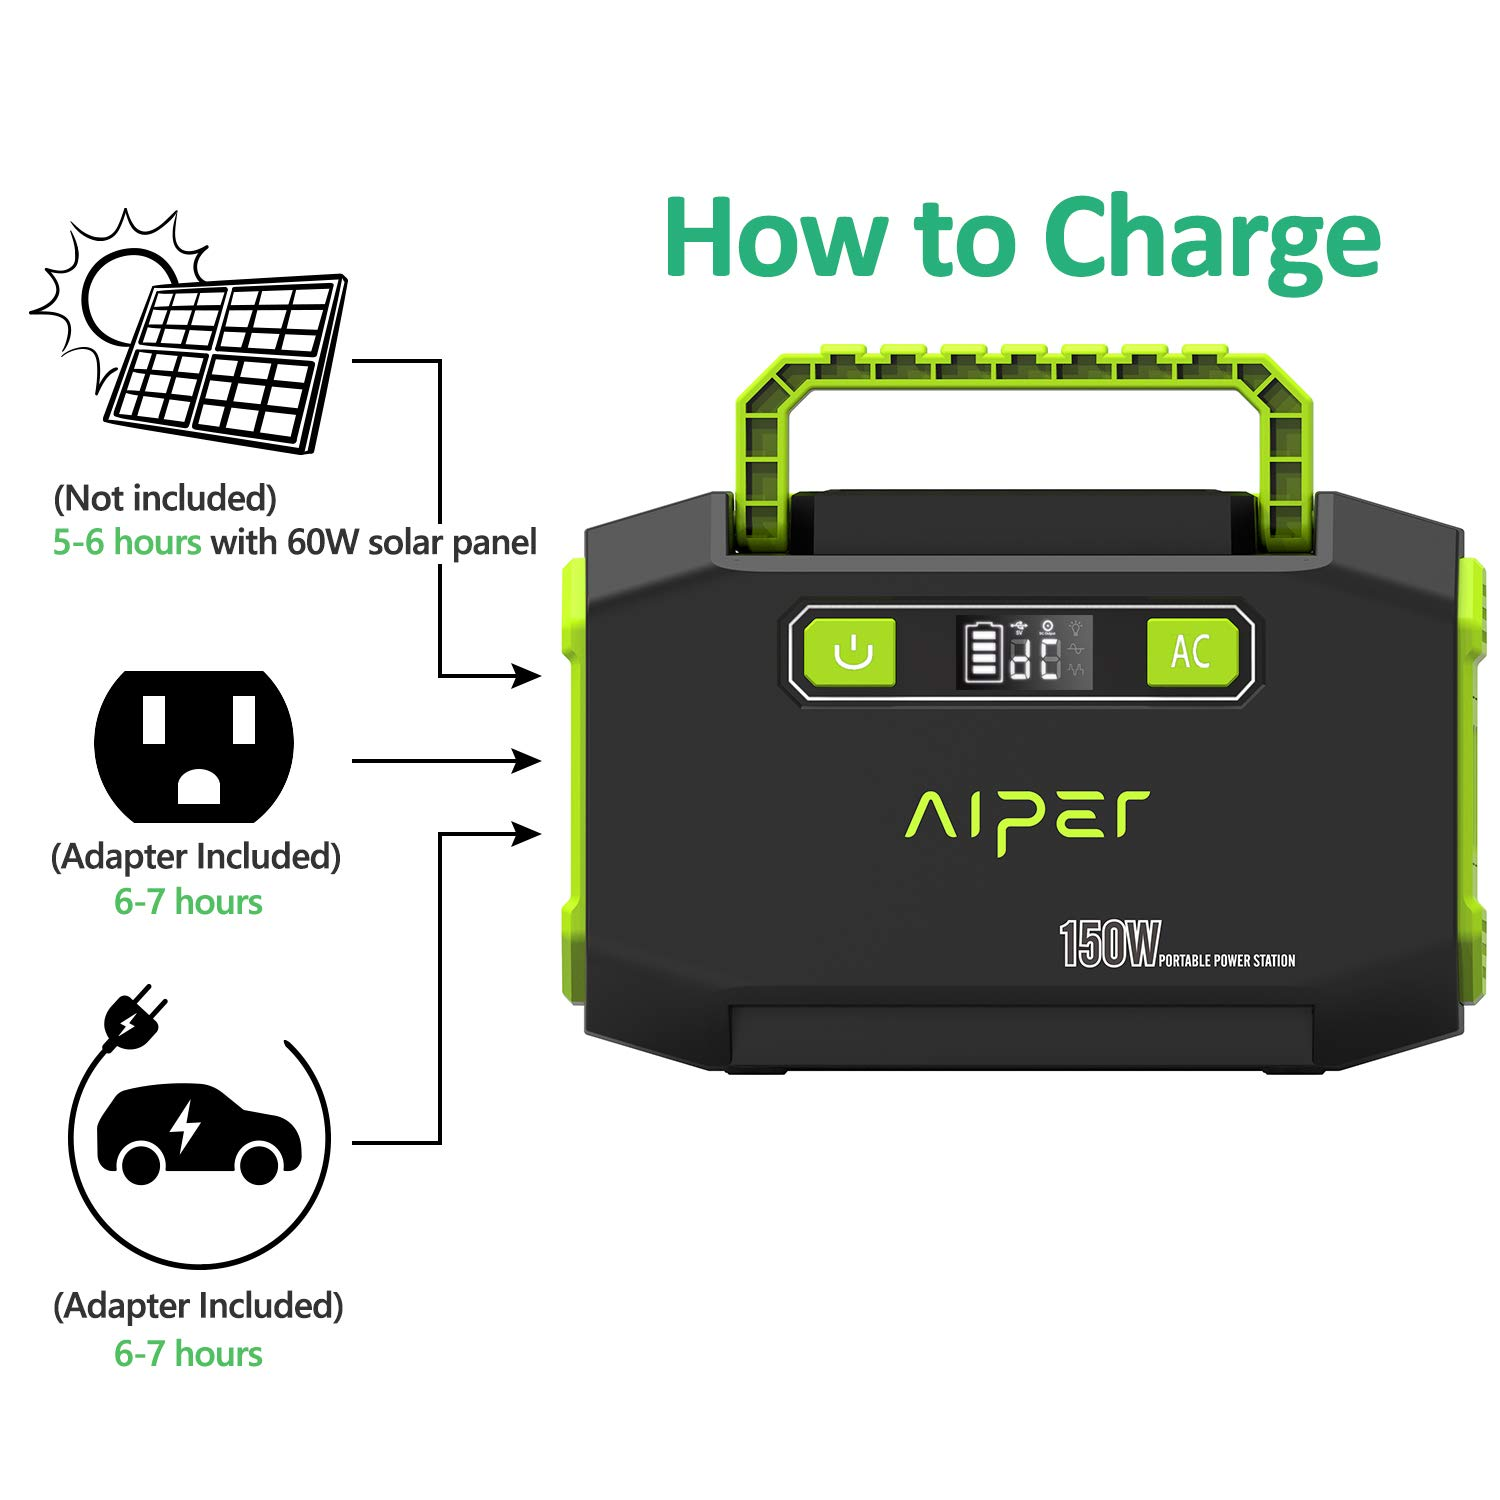 AIPER Portable Power Station 167Wh 45000mAh Solar Generator Lithium Battery Backup Power Supply with Dual 110V AC Outlet, 3 DC Ports, 2 USB Outputs for Home Emergency Camping CPAP Outdoors by AIPER (Image #5)